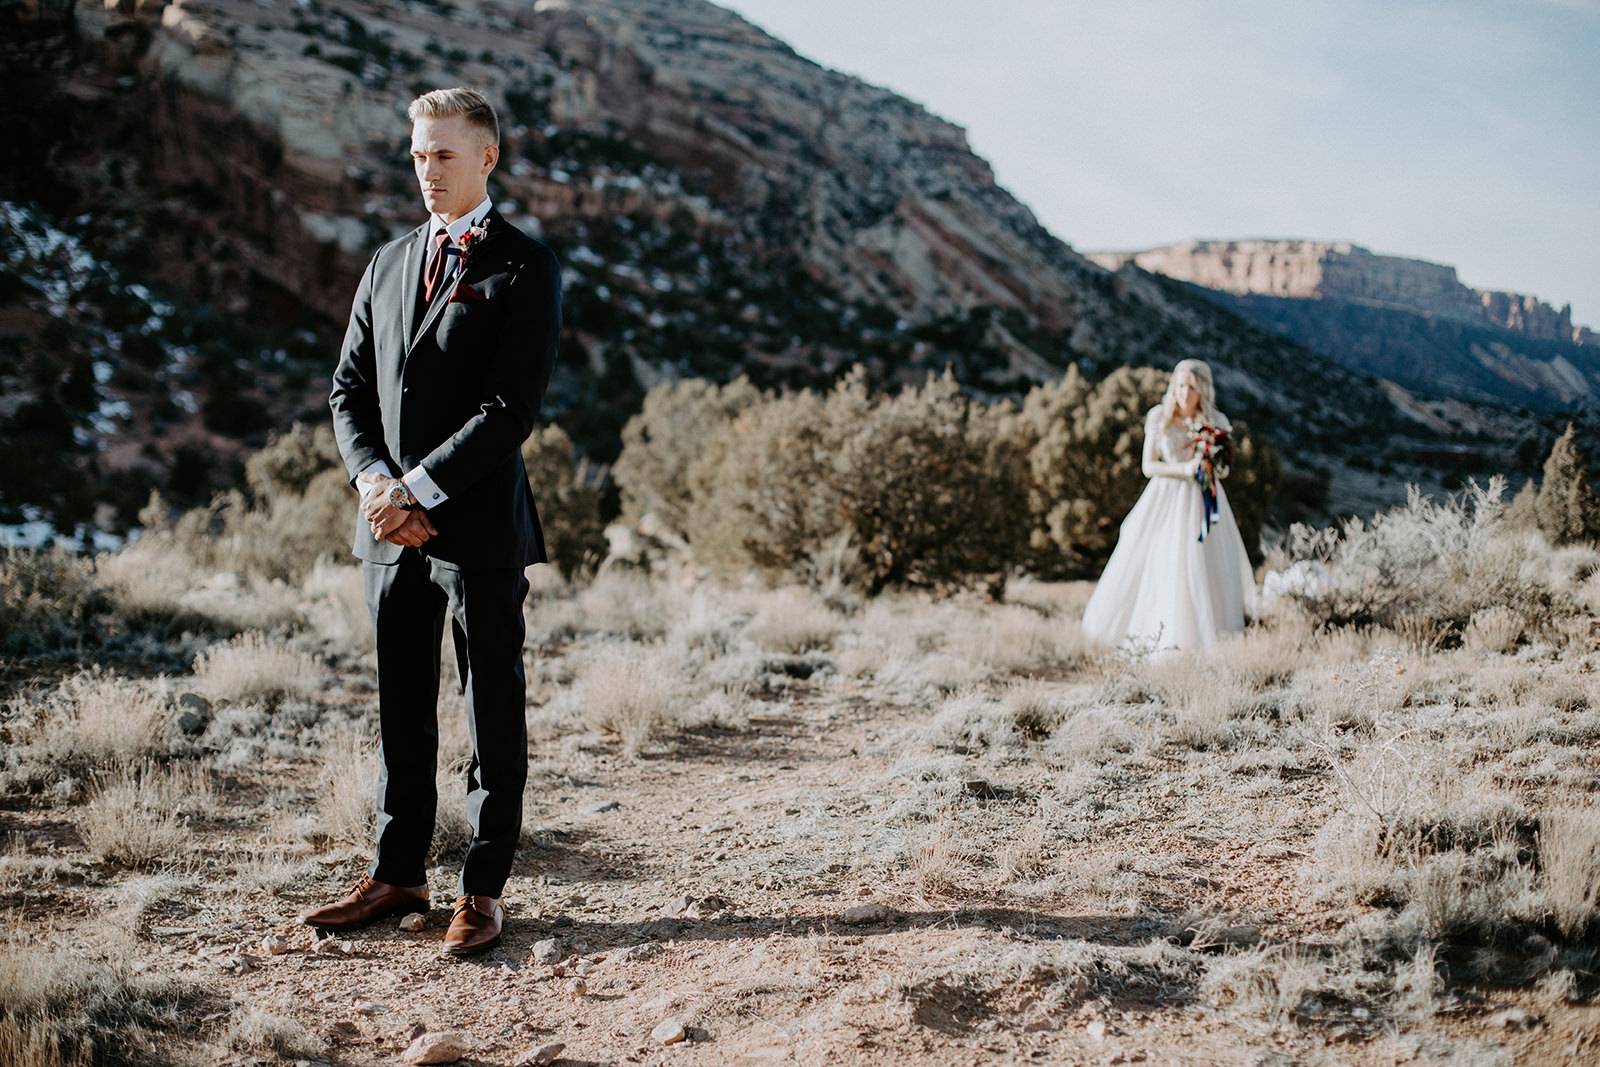 Groom standing in foreground while bride walks him behind during first look